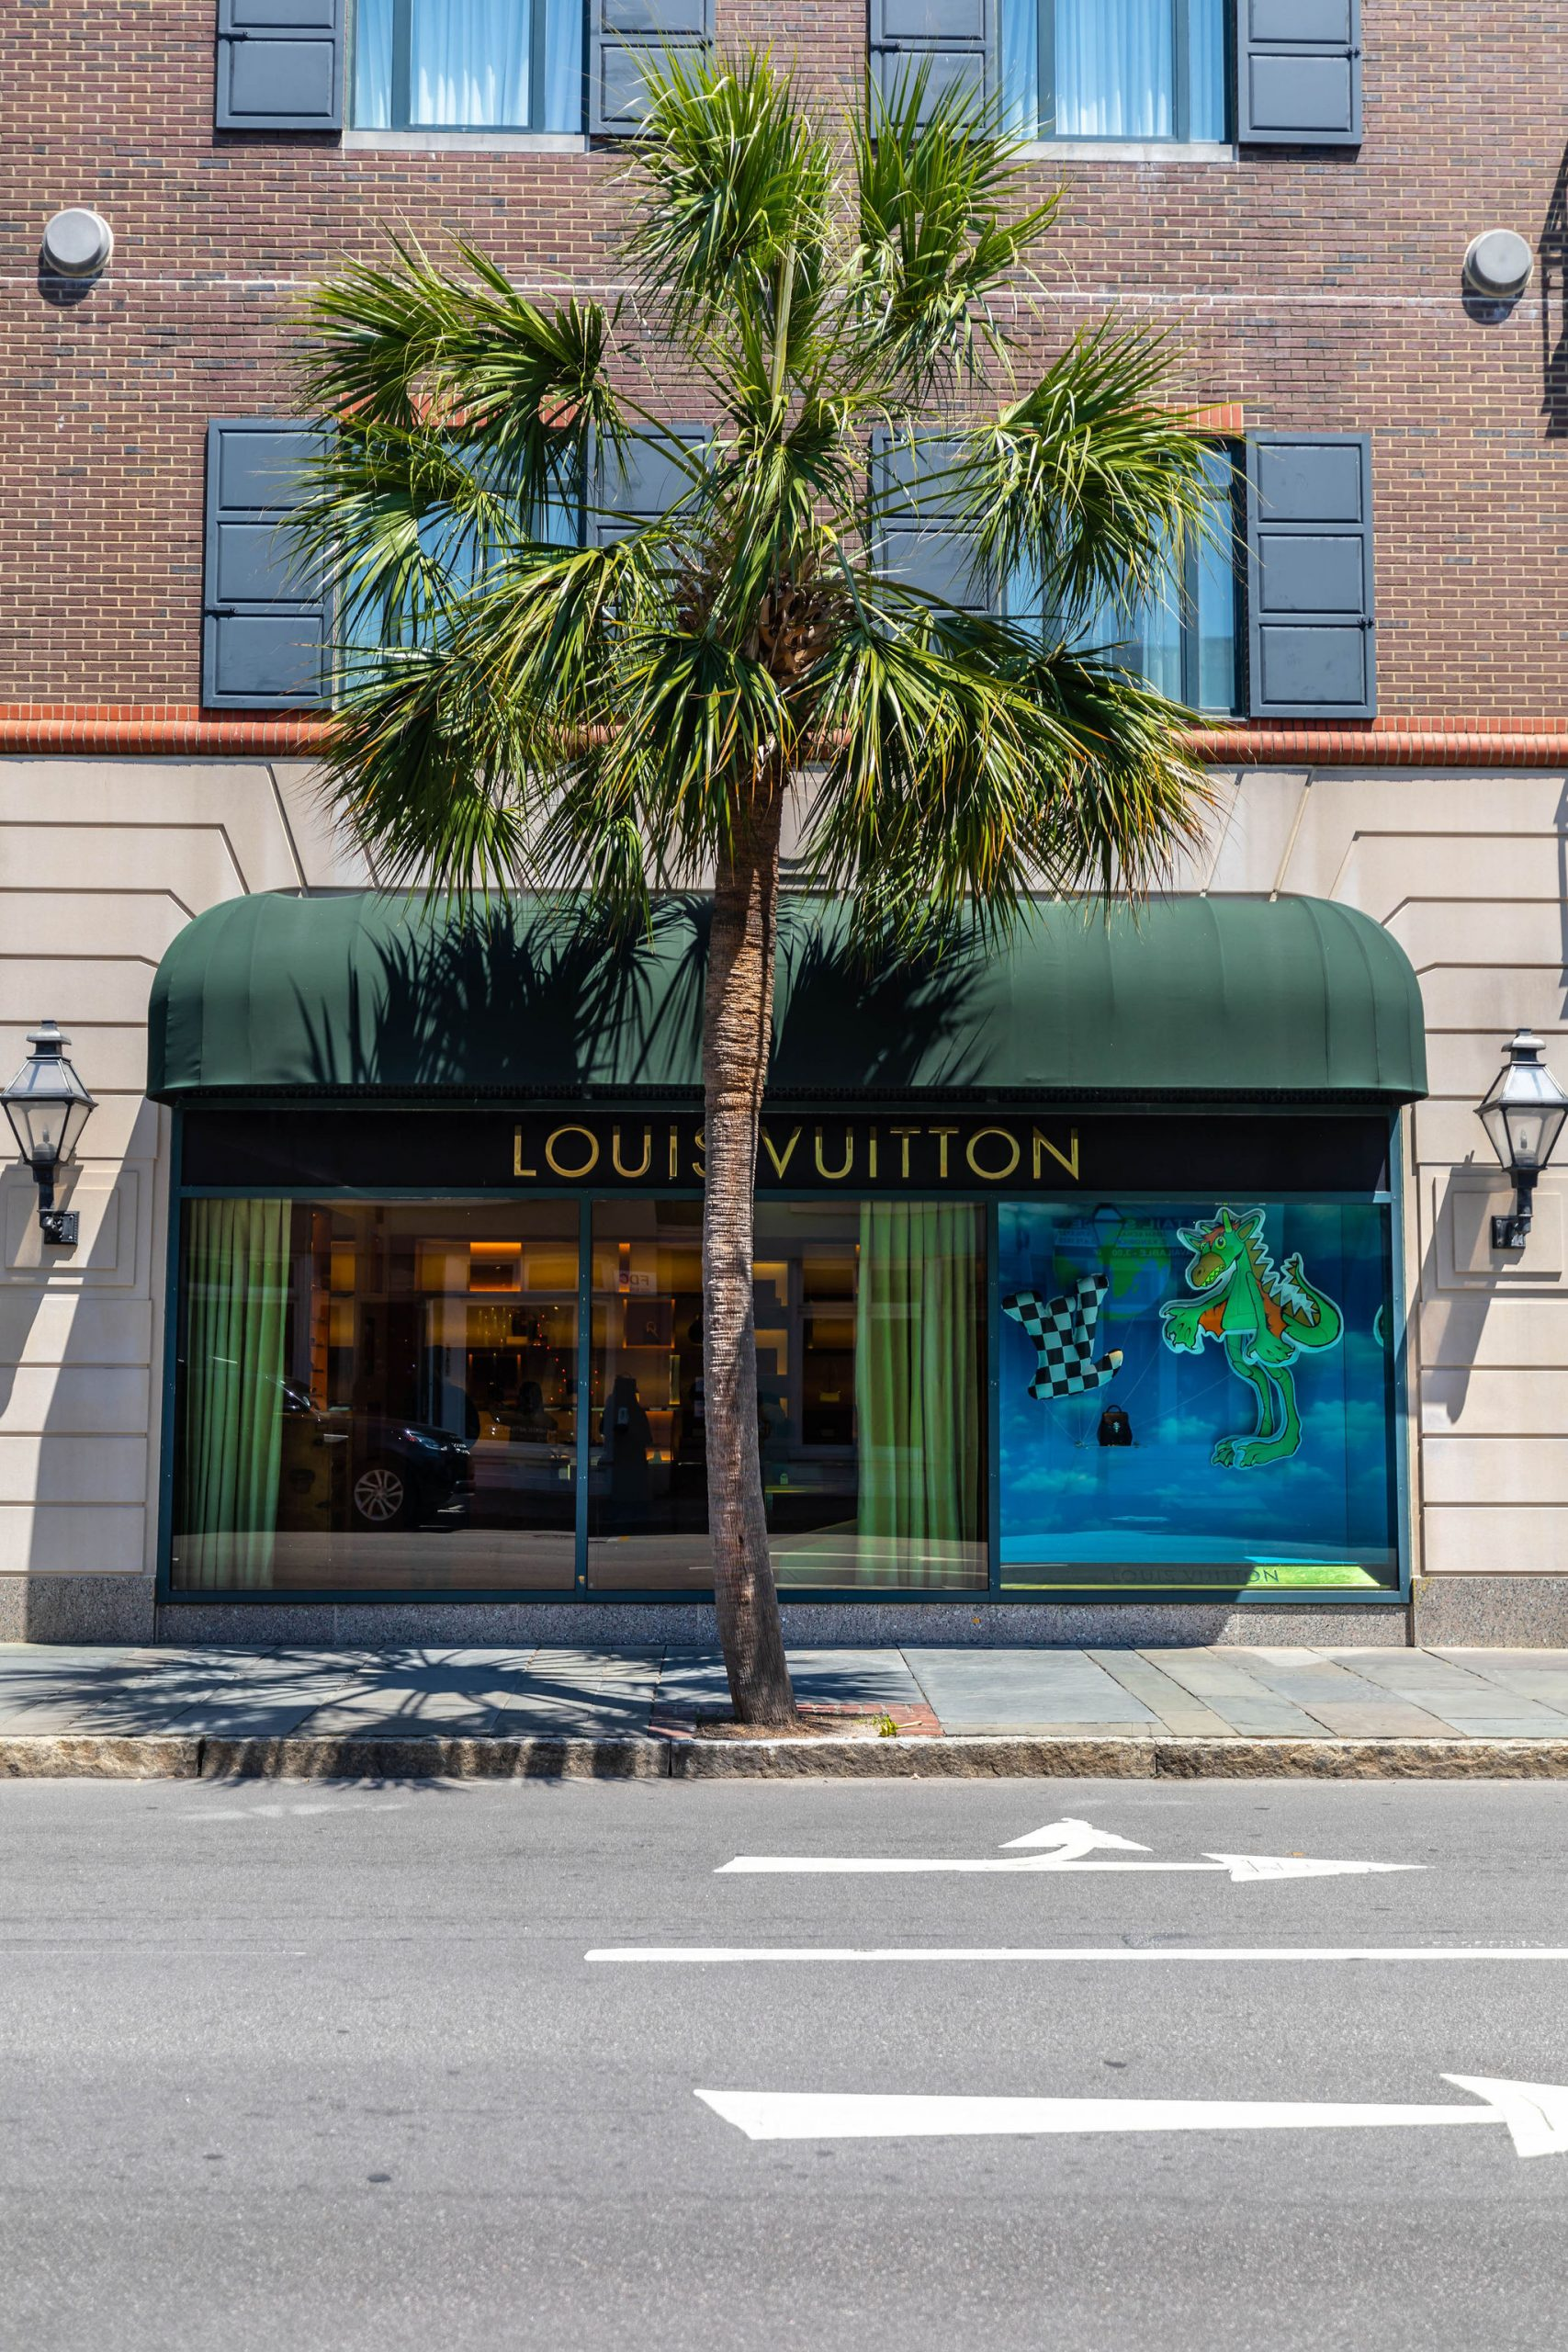 Louis Vuitton Store in Charleston South Carolina Inside Belmond Charleston Place Luxury Hotel Photographed by Luxury Travel and Lifestyle Writer and Photographer Annie Fairfax